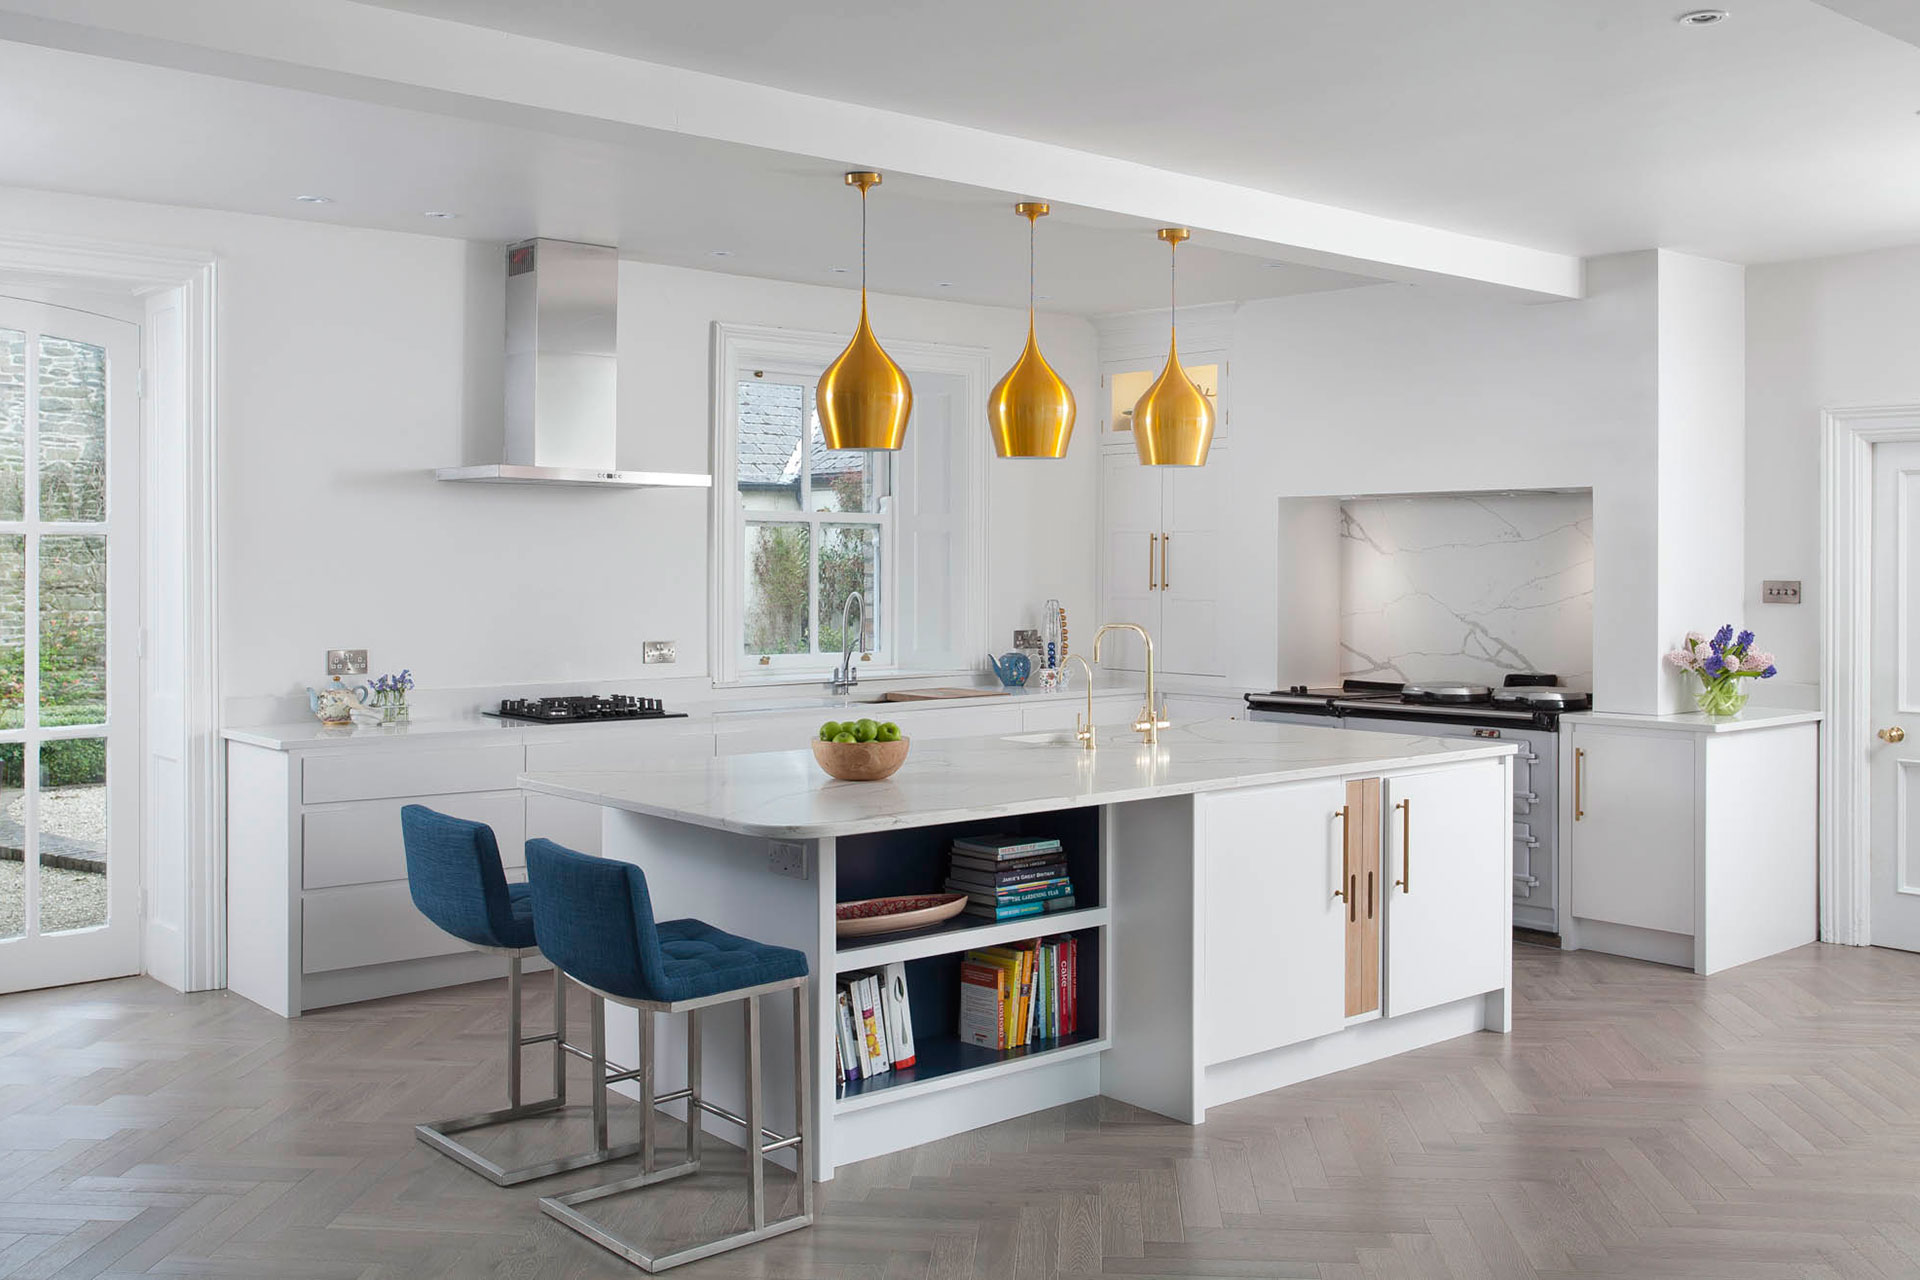 DMVF Architects Brand Photography: Kitchen image